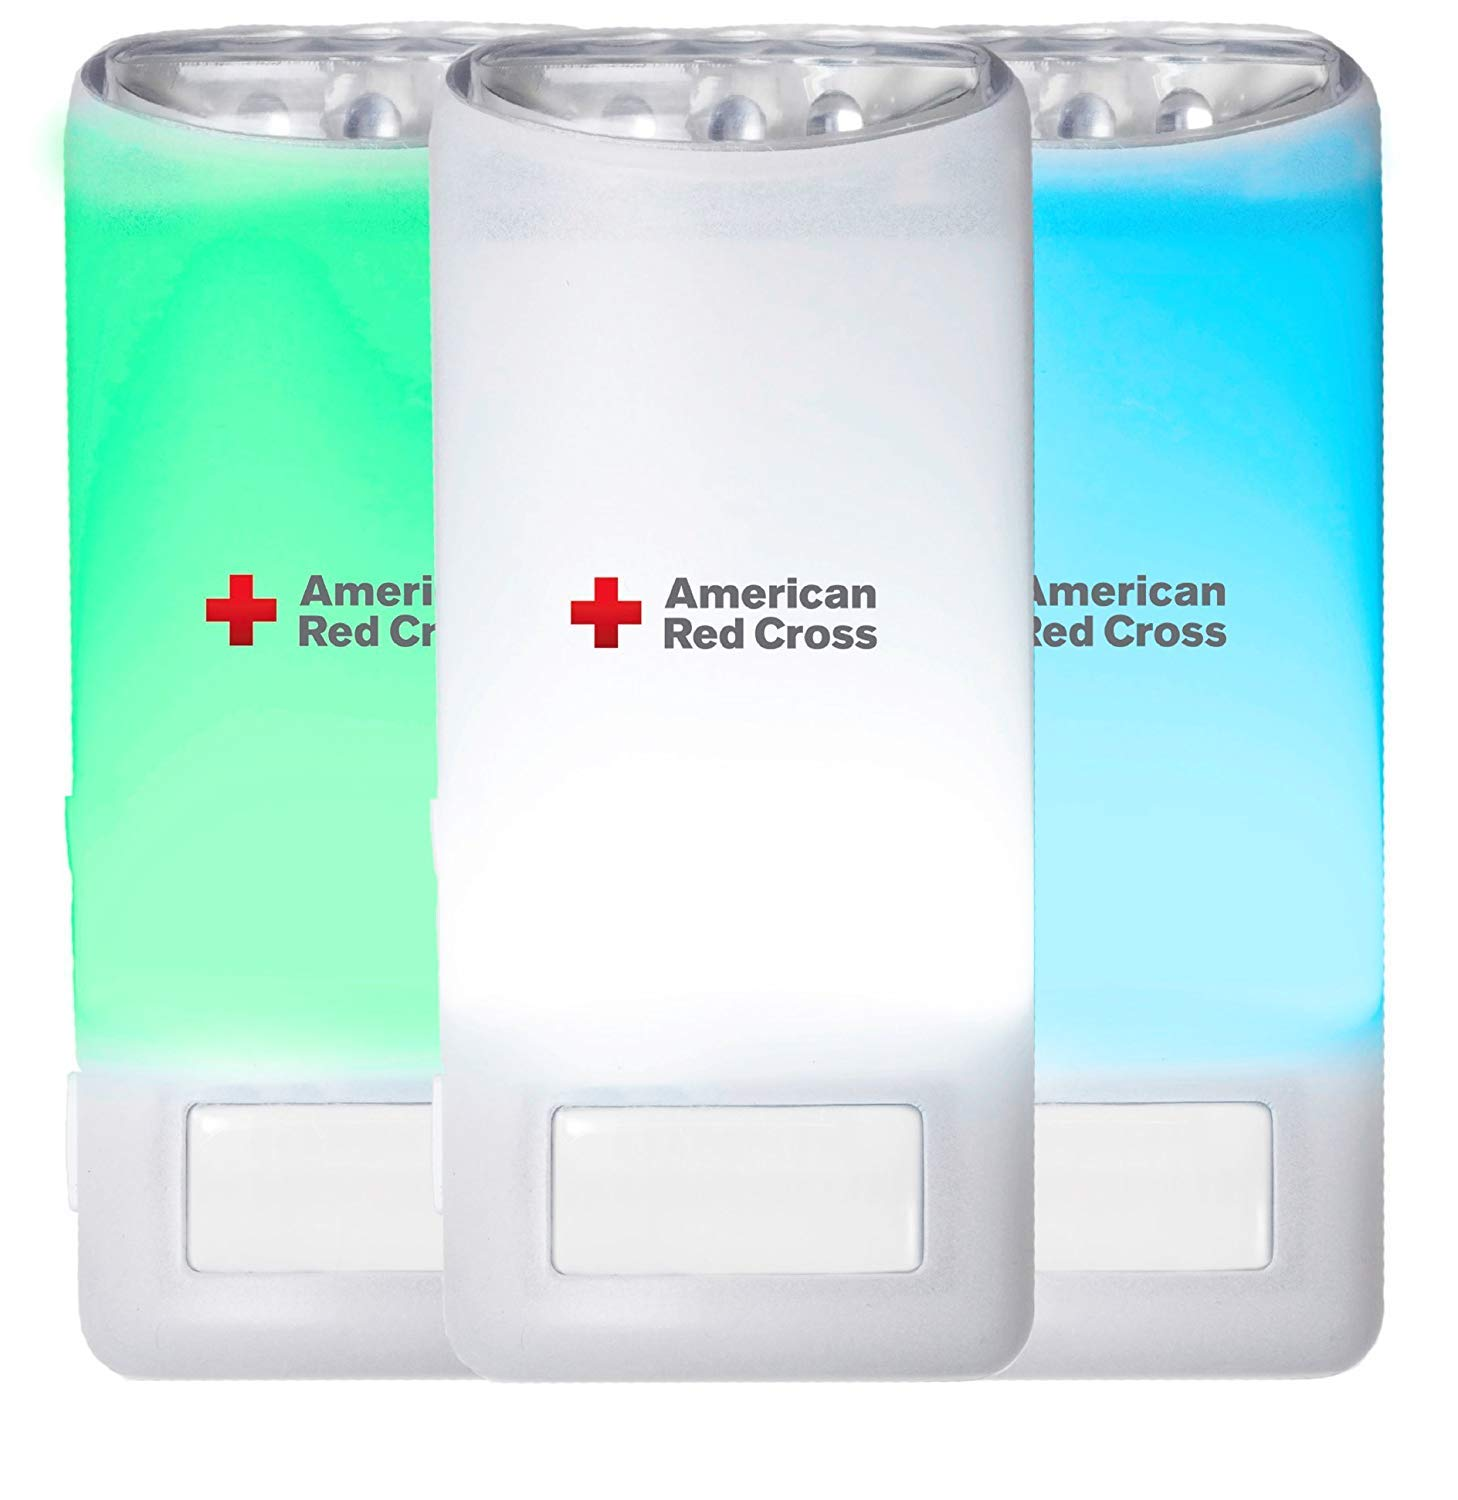 4 Count Eton American Red Cross Blackout Buddy Color Motion Activated Emergency LED Flashlight Blackout Alert /& Nightlight